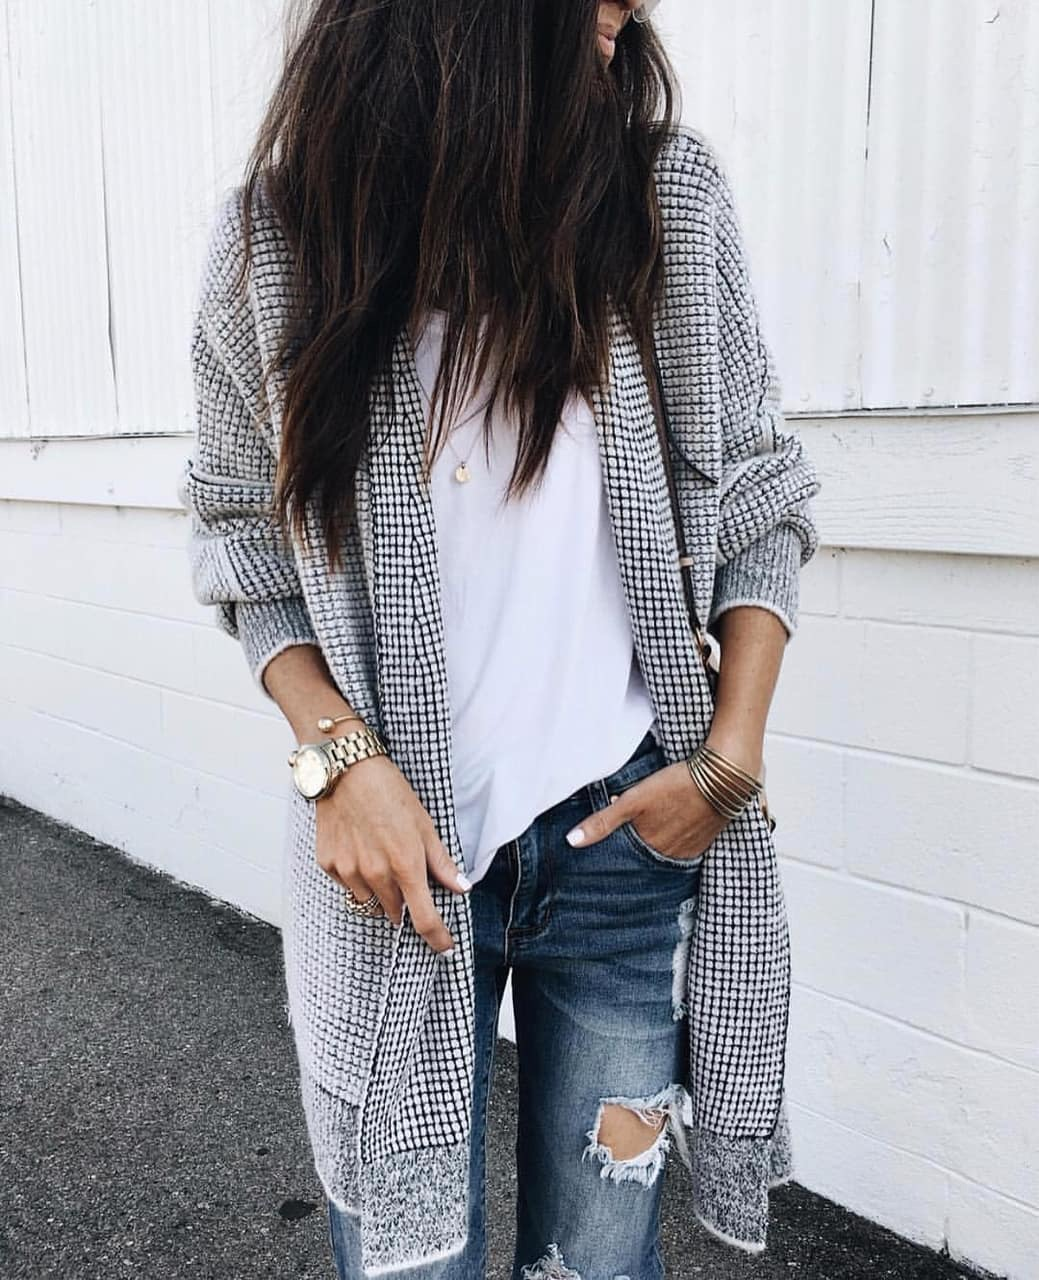 cardigan and sweater image